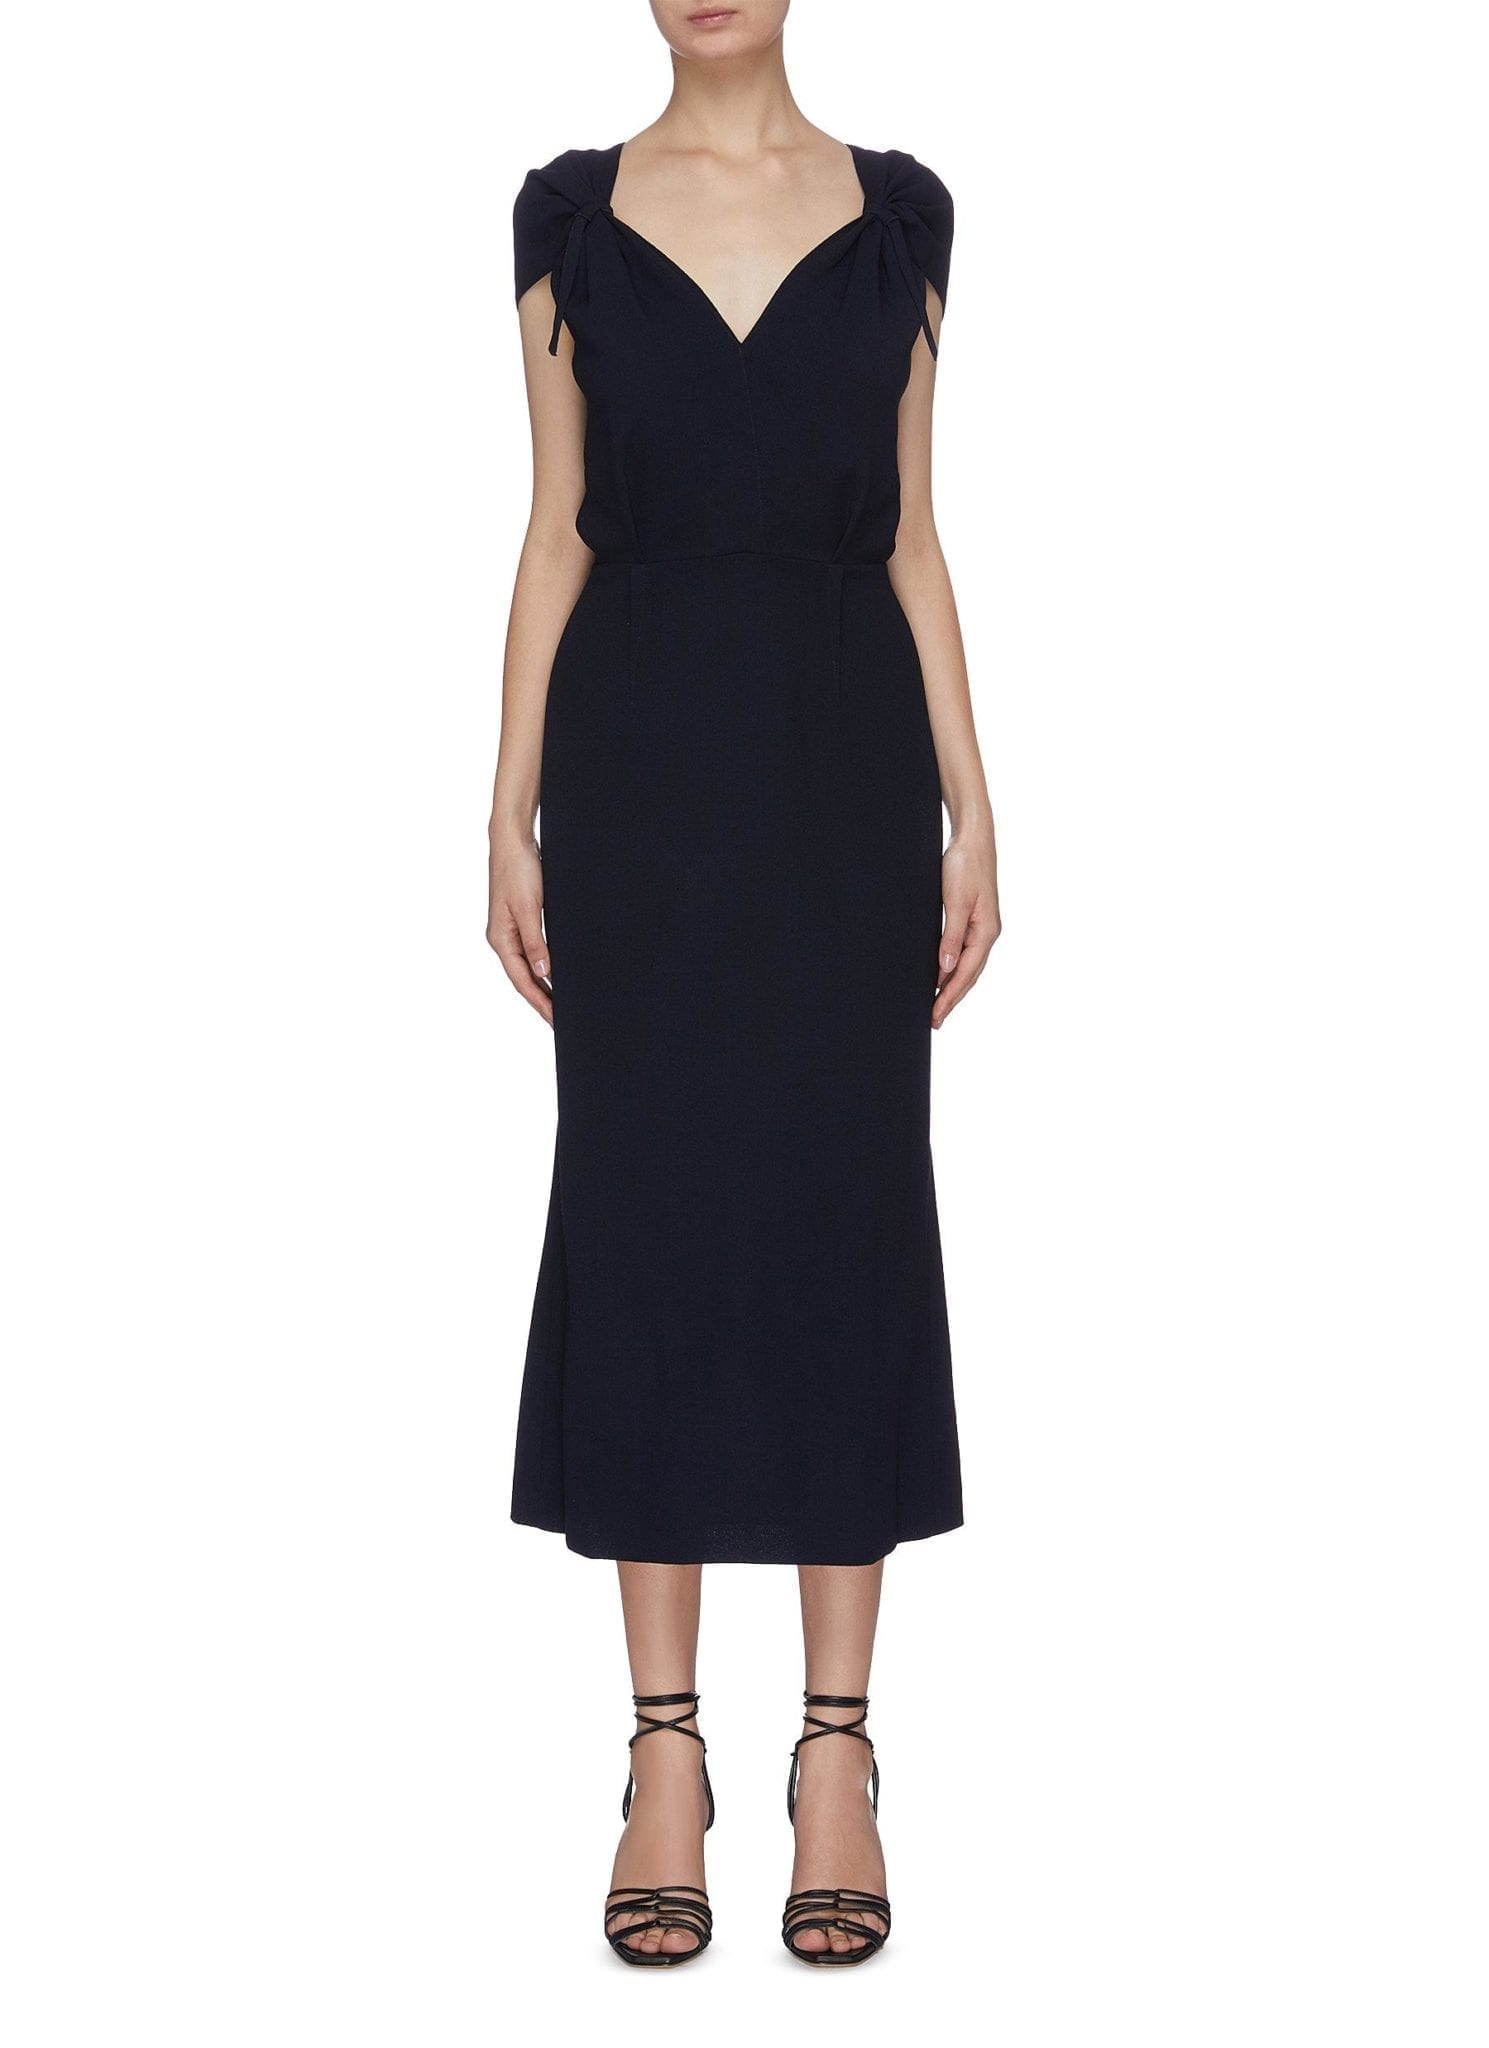 ROLAND MOURET 'Eclipse' Sheath Dress